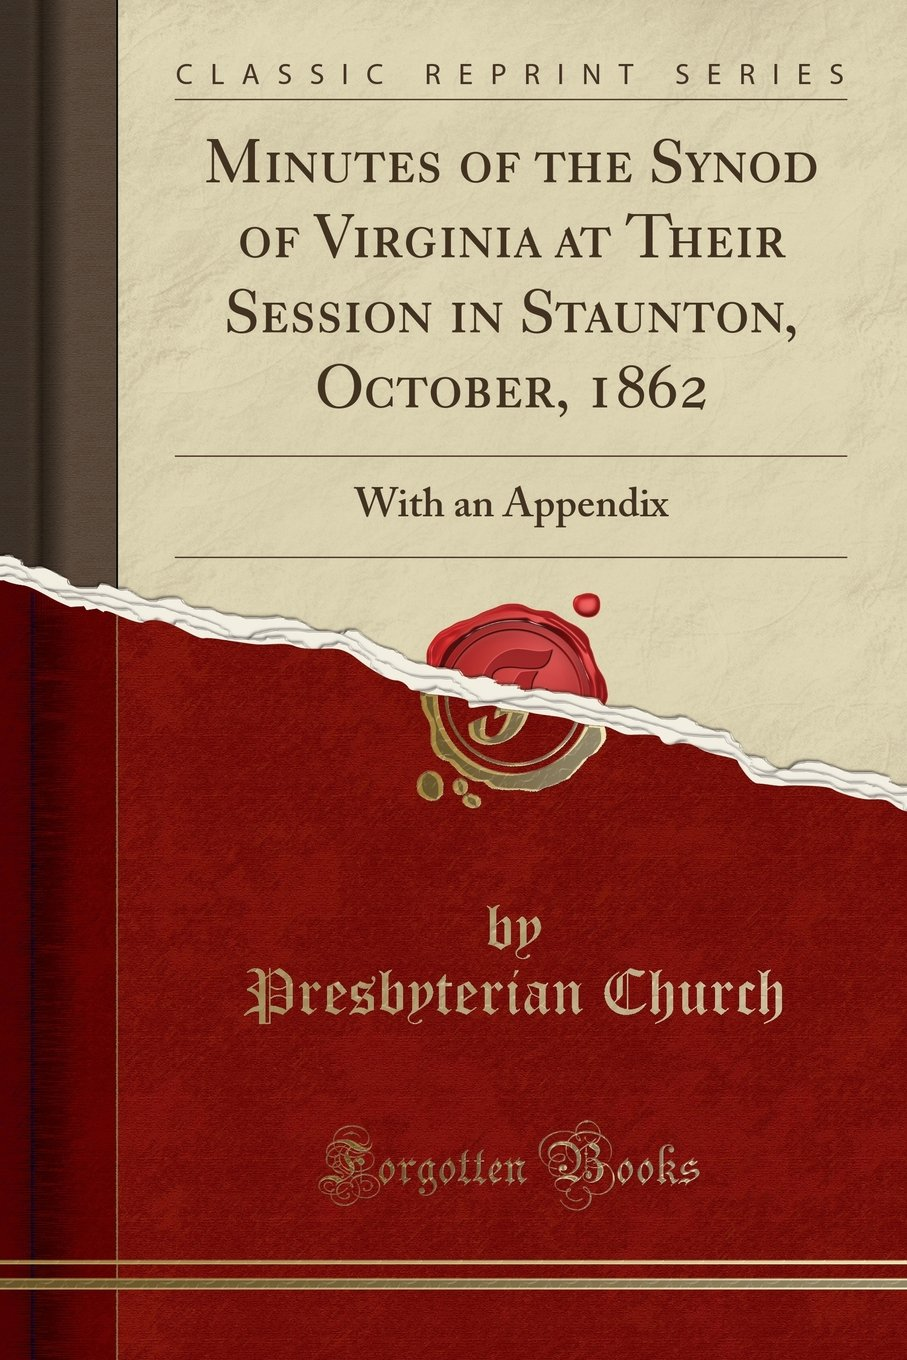 Minutes of the Synod of Virginia at Their Session in Staunton, October, 1862: With an Appendix (Classic Reprint) ebook